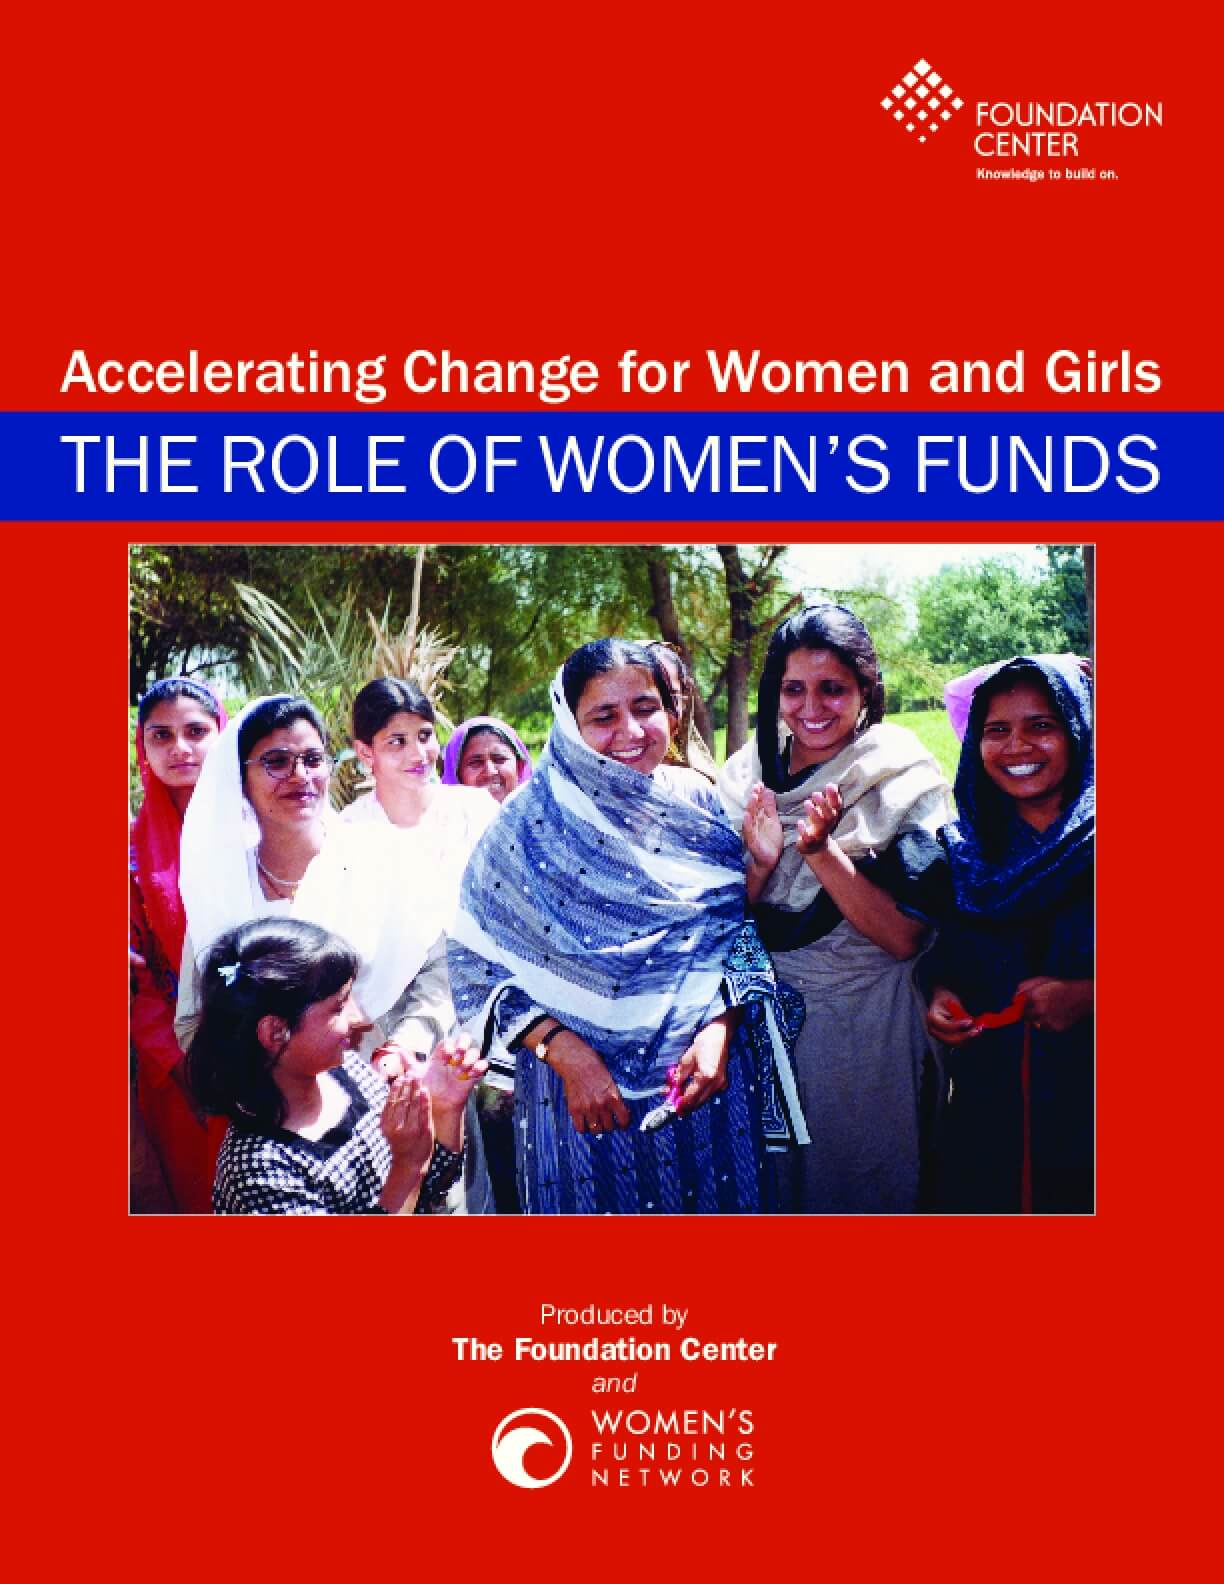 Accelerating Change for Women and Girls: The Role of Women's Funds